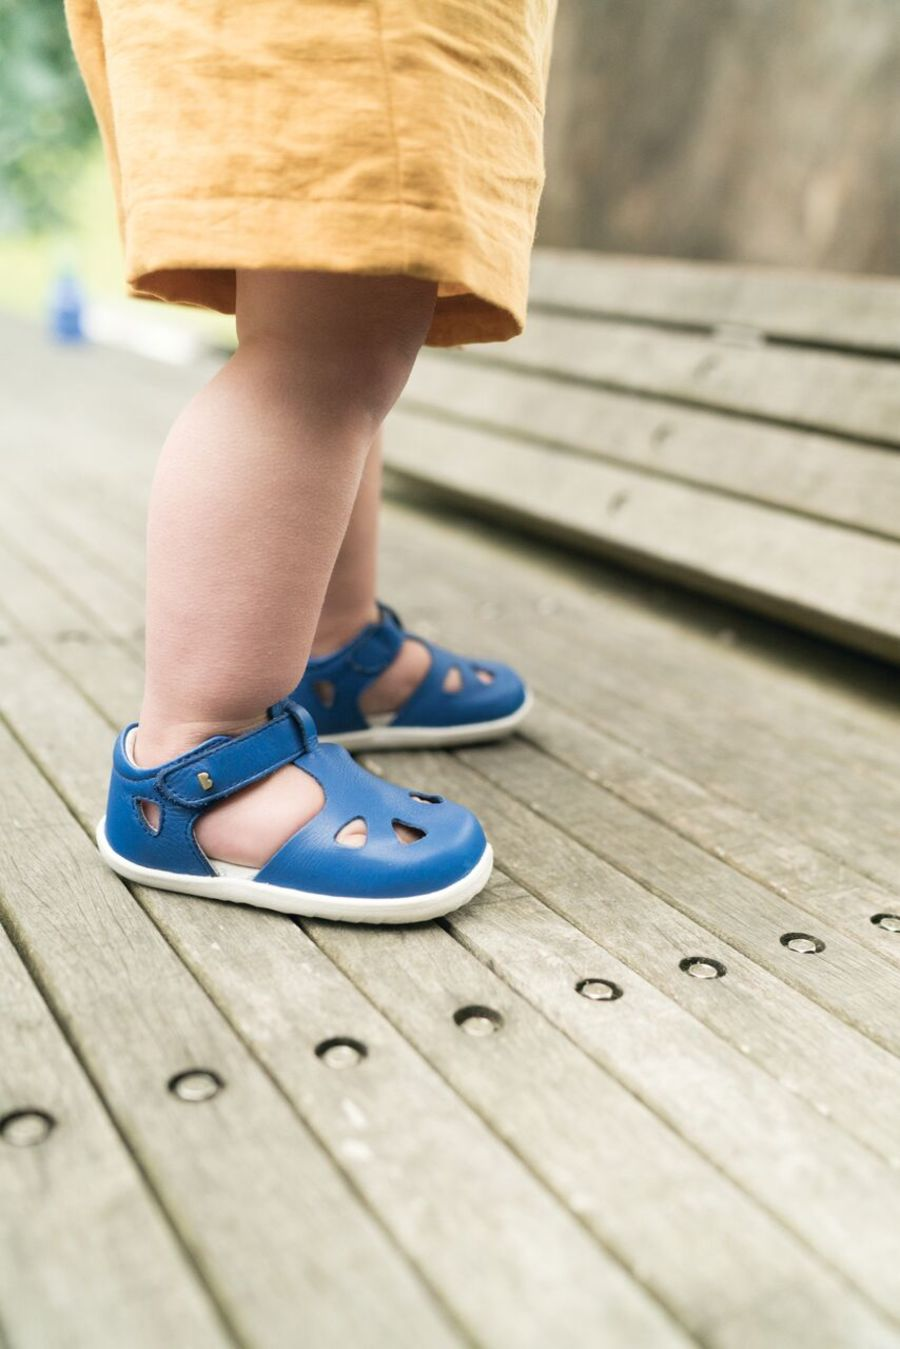 Bobux Quick Dry Sandals - Soled 4 Kids